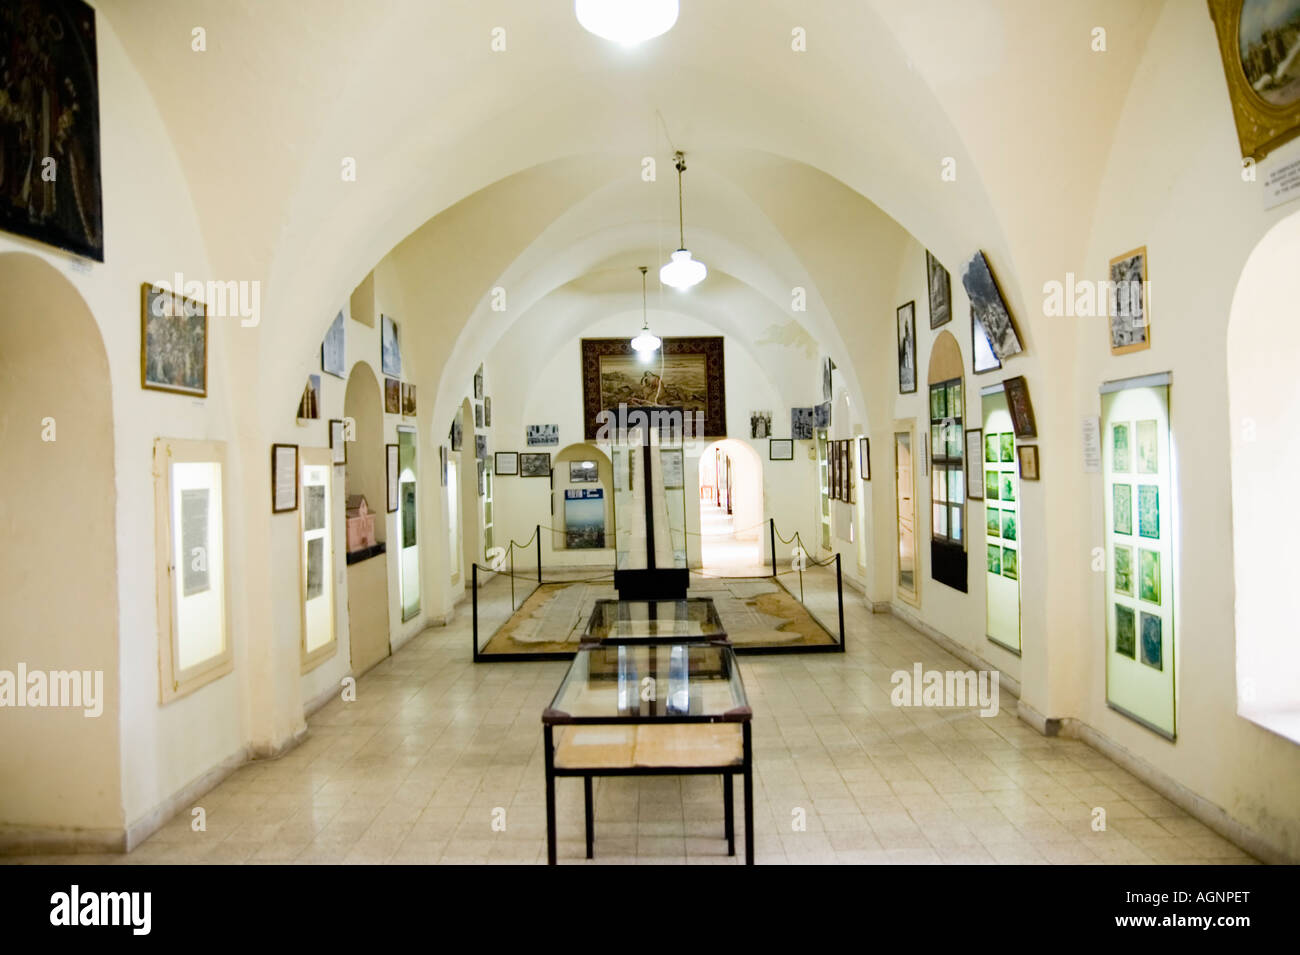 Israel Jerusalem the old city Interior of the Armenian Museum in the Armenian quarters - Stock Image